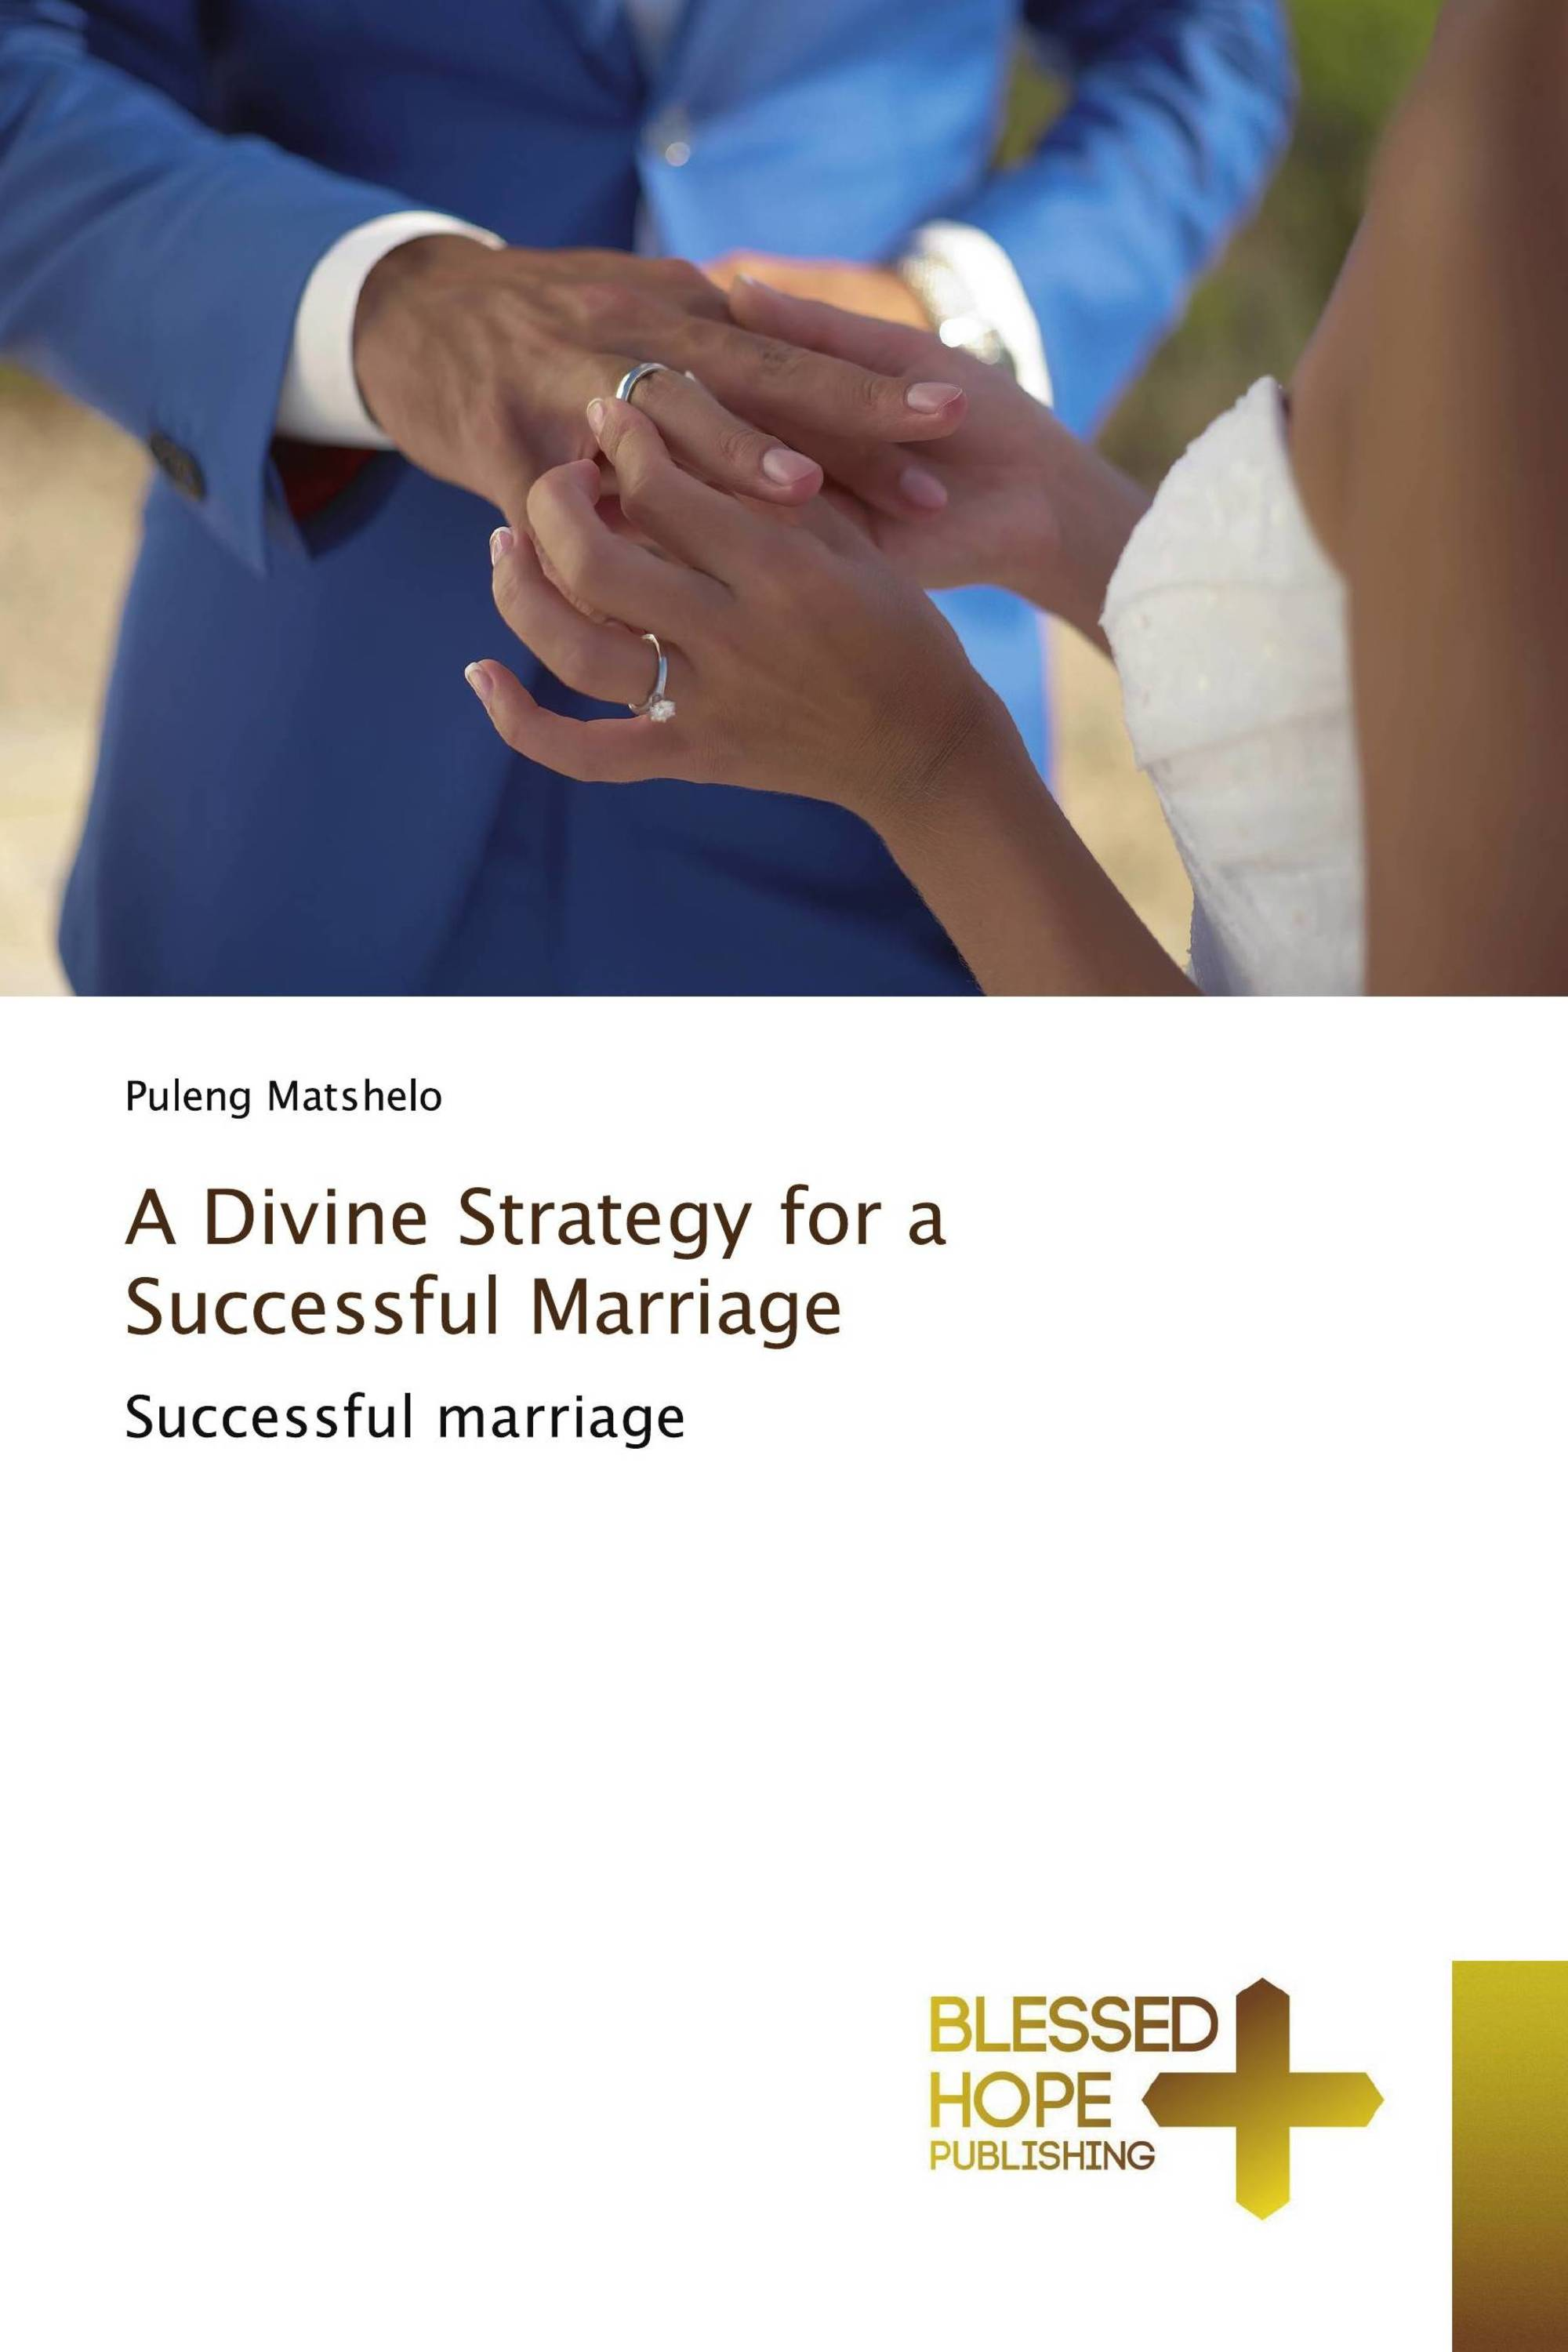 A Divine Strategy for a Successful Marriage